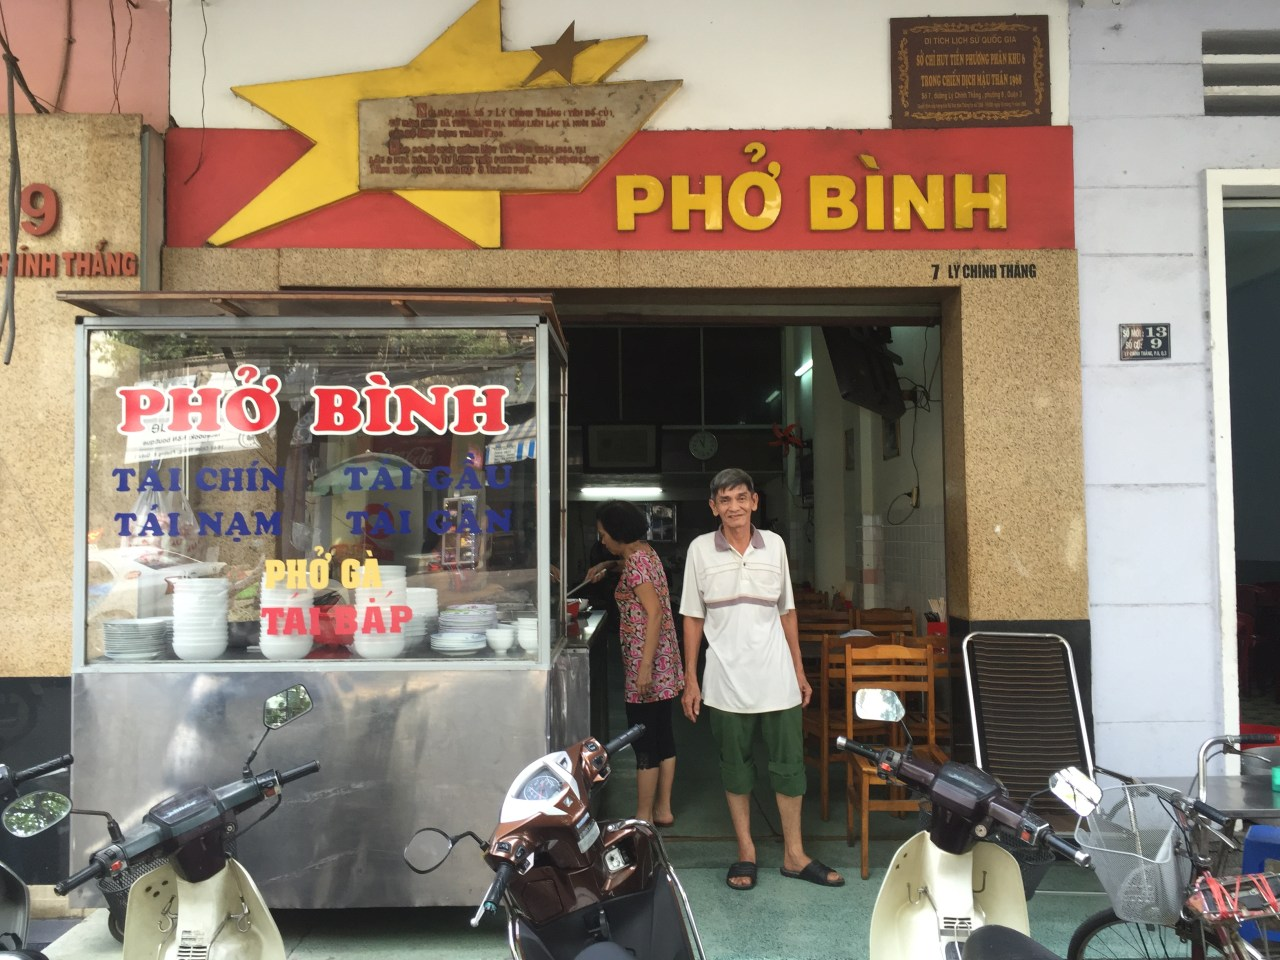 Breakfasting in the Noodle Shop Where the Tet Offensive Was Planned